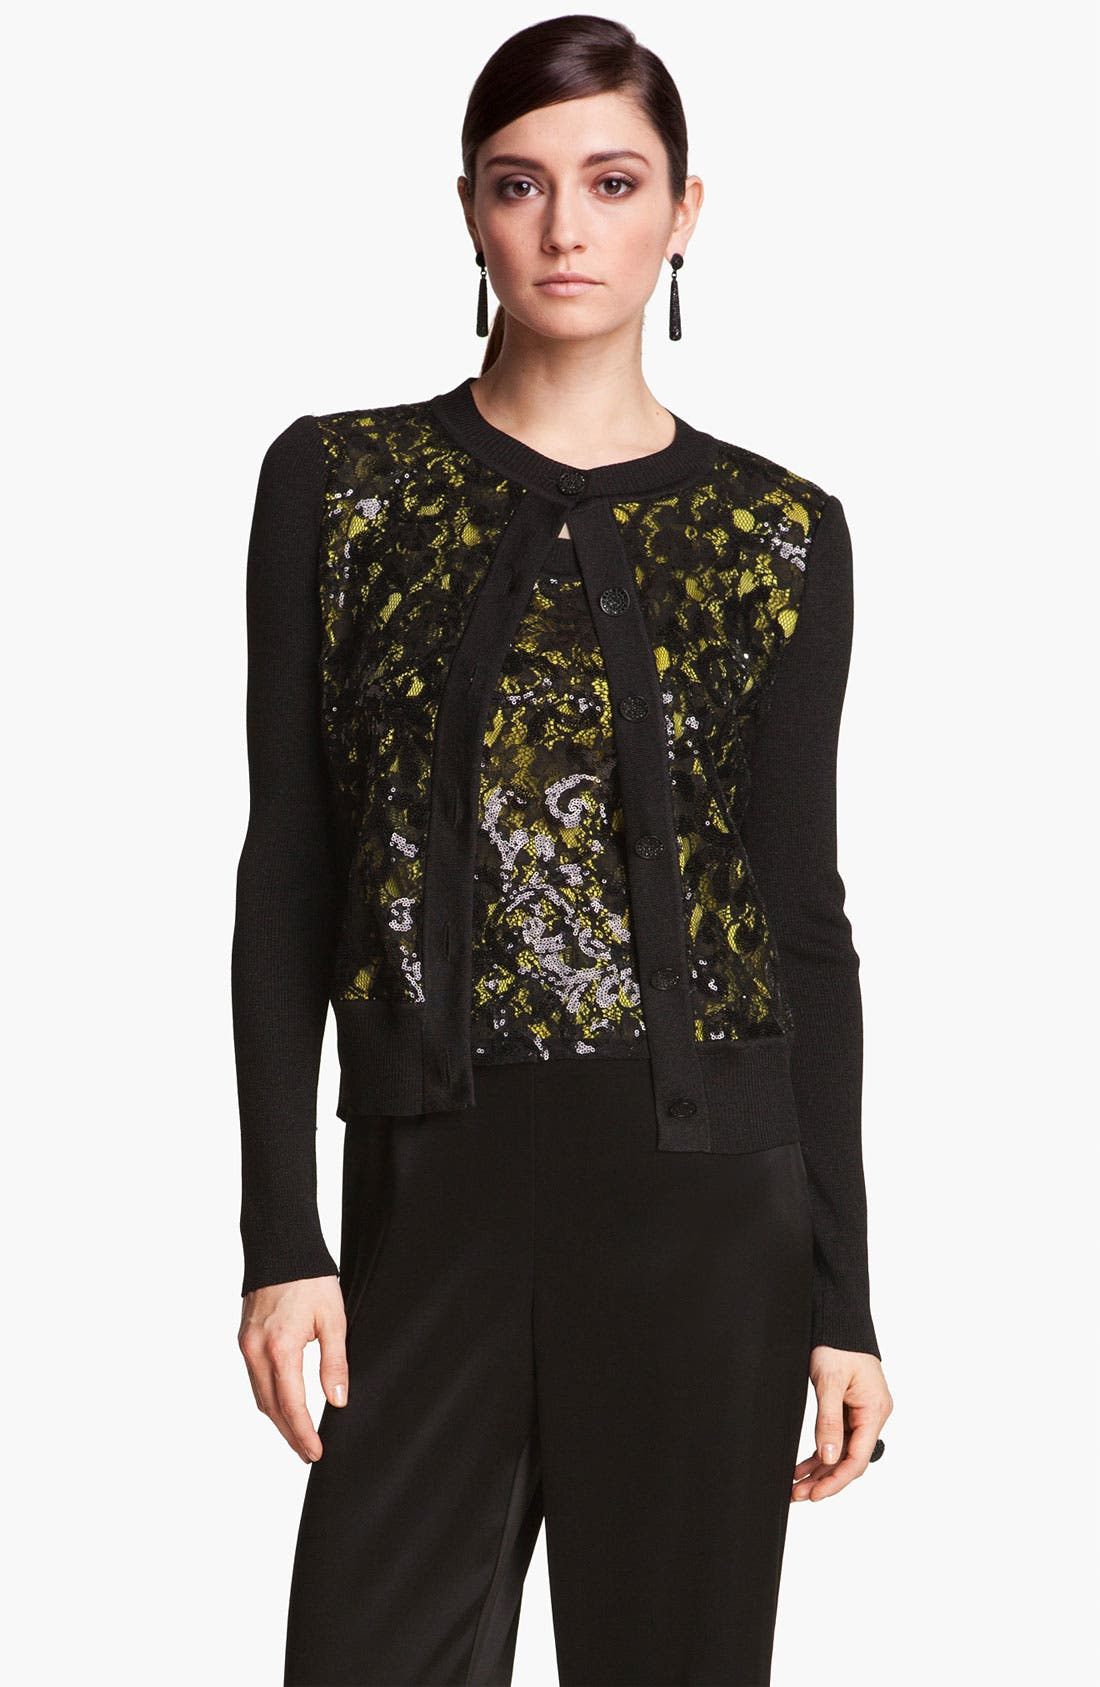 Alternate Image 1 Selected - St. John Collection Sequin Lace & Shimmer Knit Cardigan